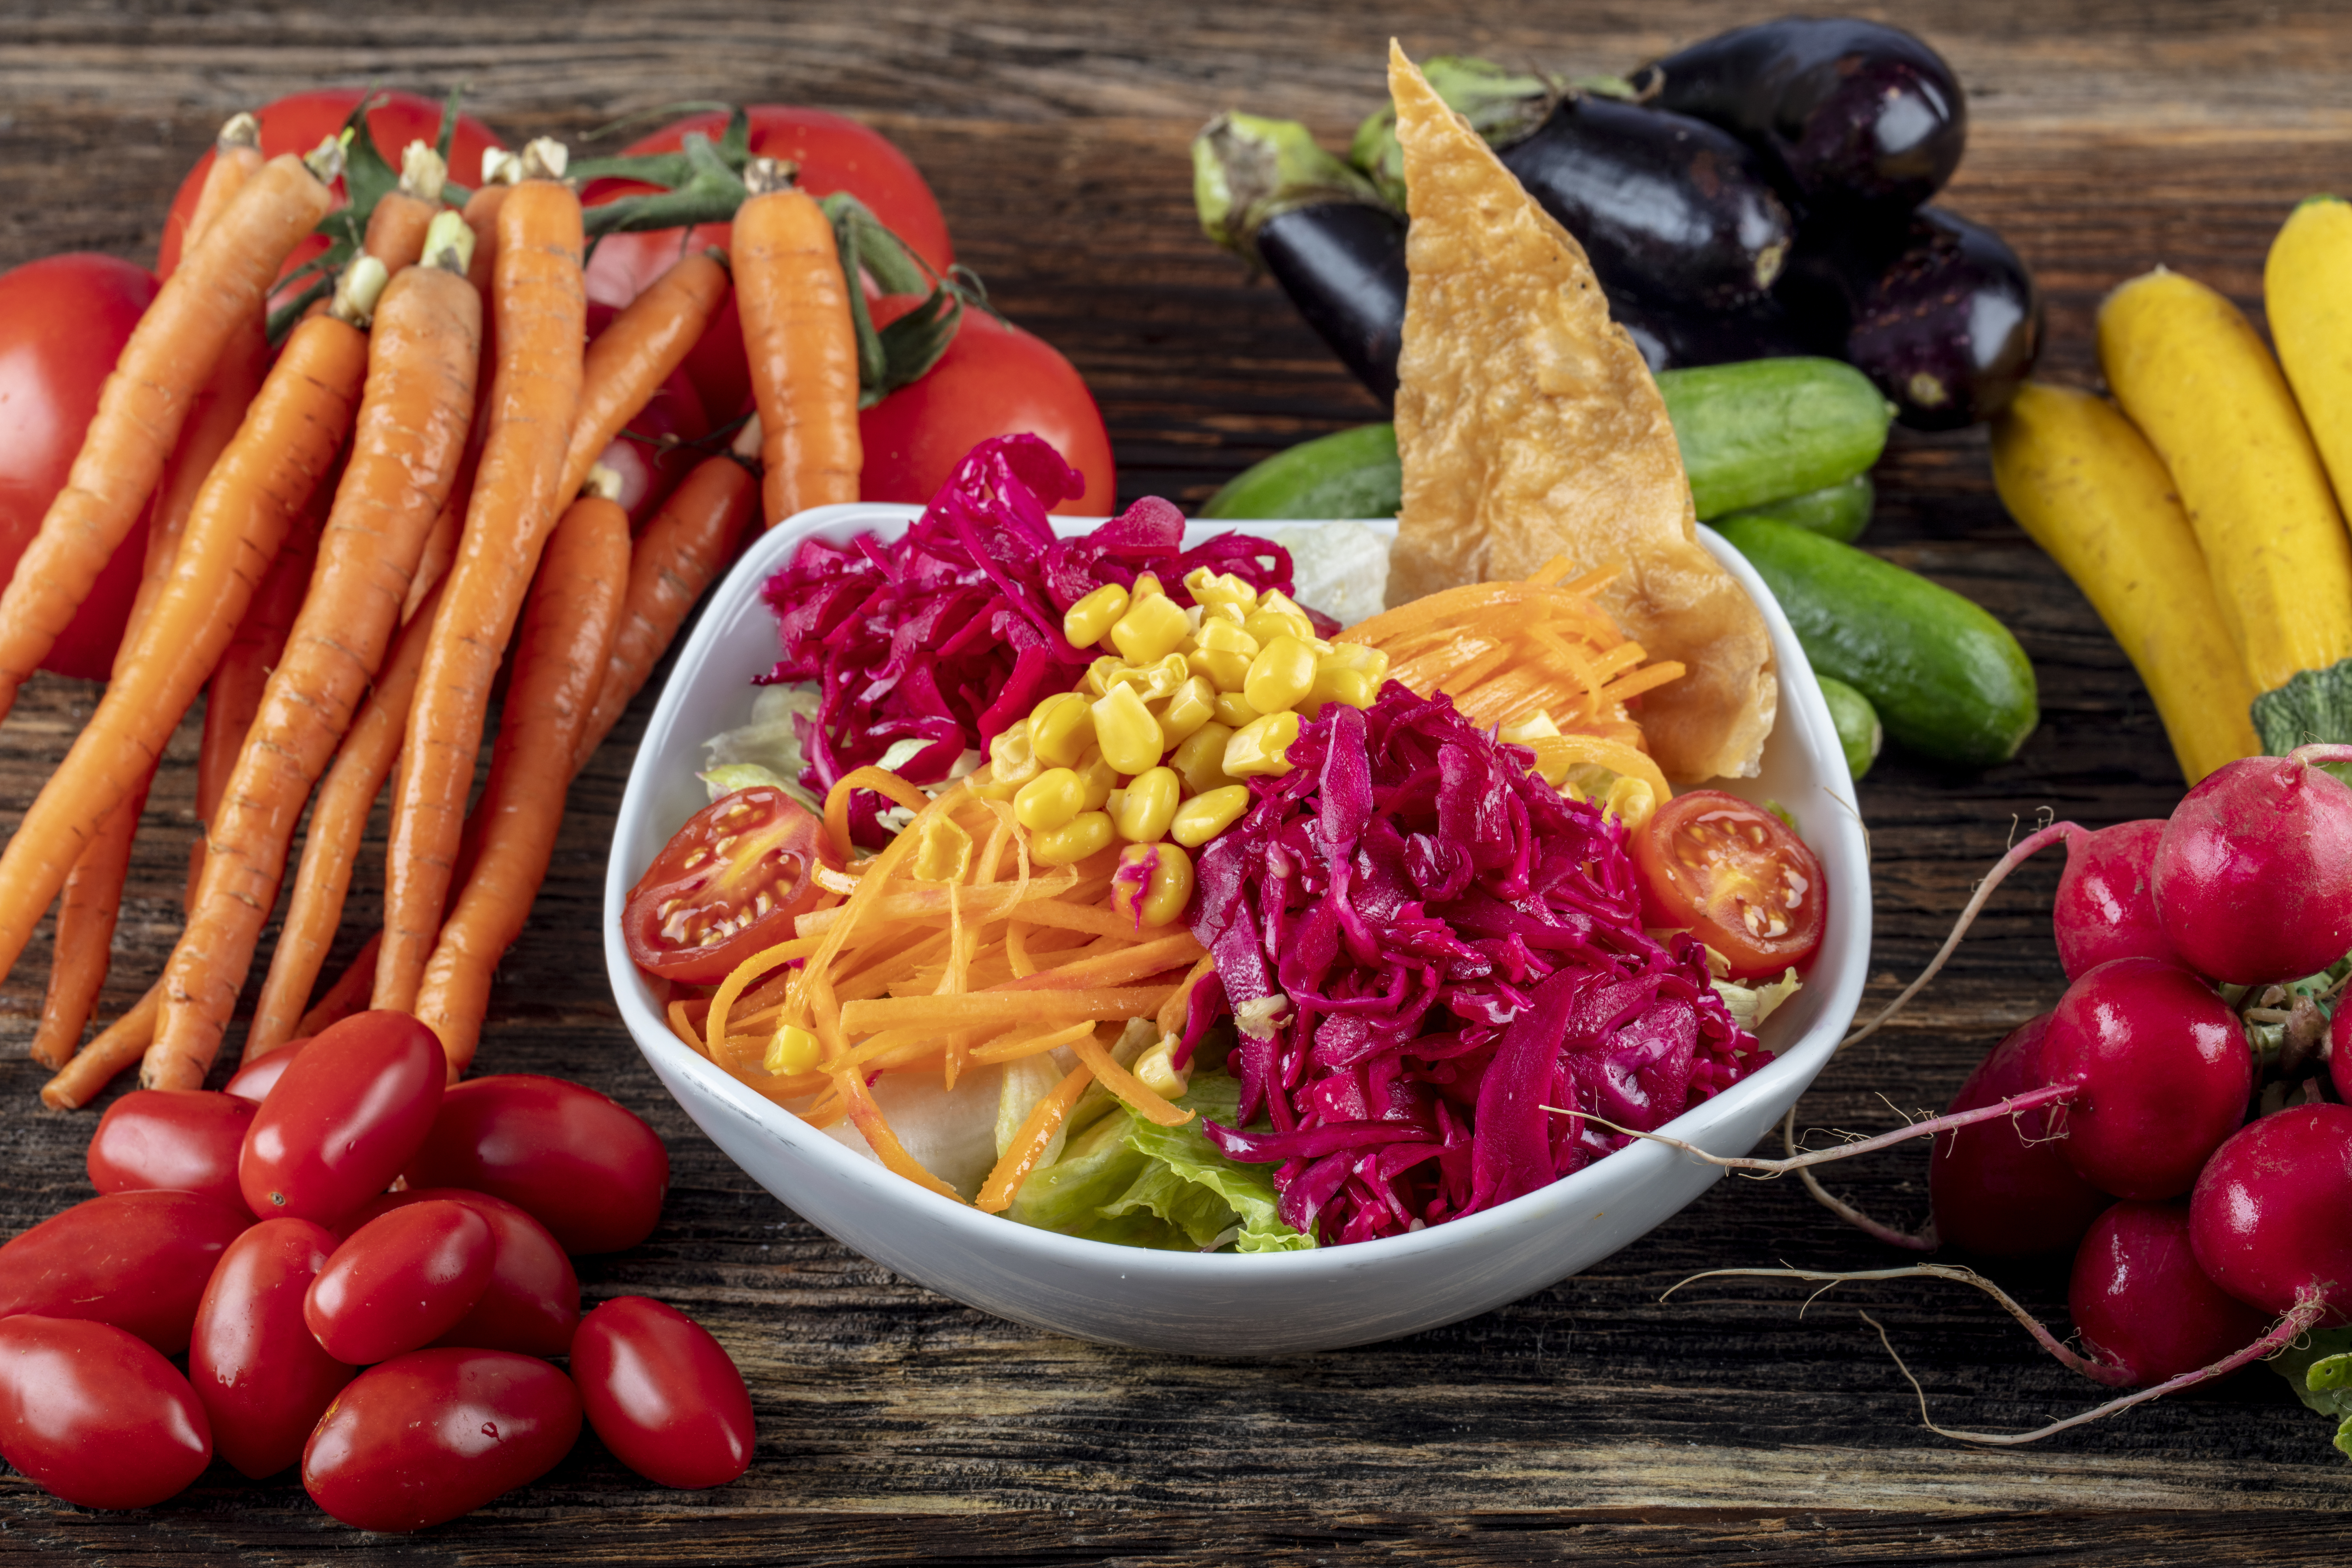 Carrot and veggies salad with lettuce, corn, red-cabbage, healthy homemade vegan food, vegetarian diet, vitamin snack.